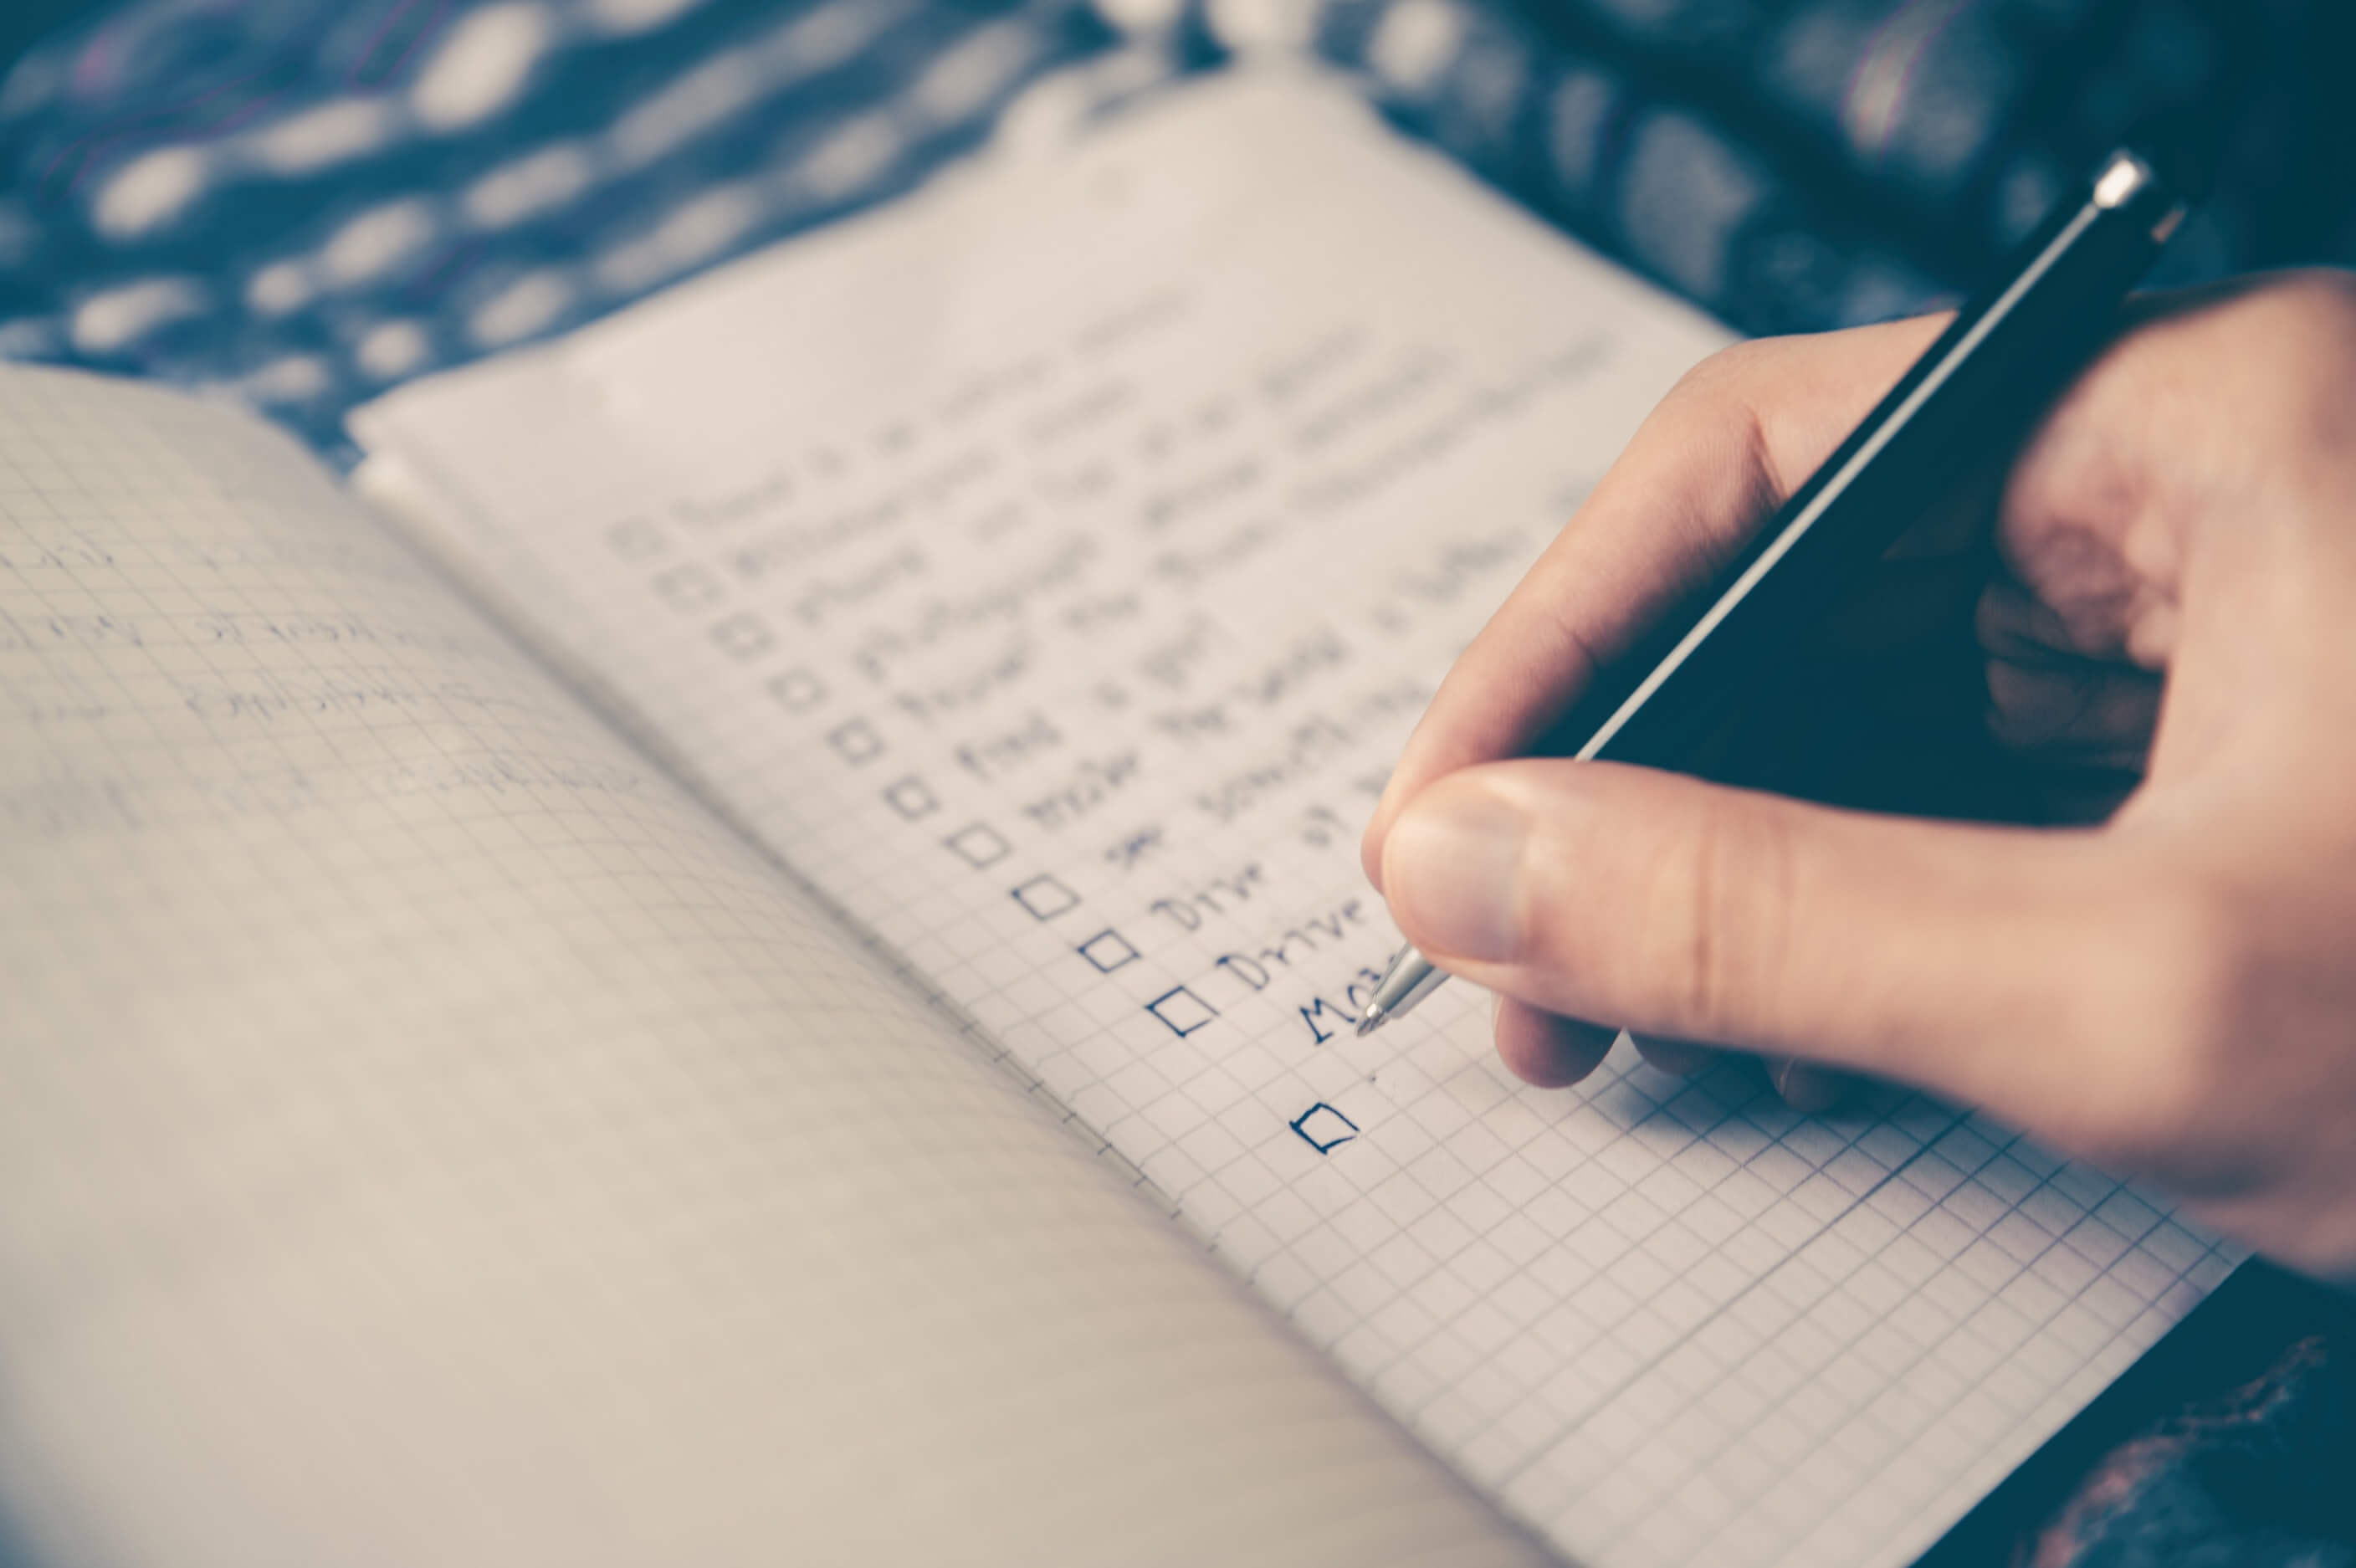 A person working on a checklist in a notebook with graph paper